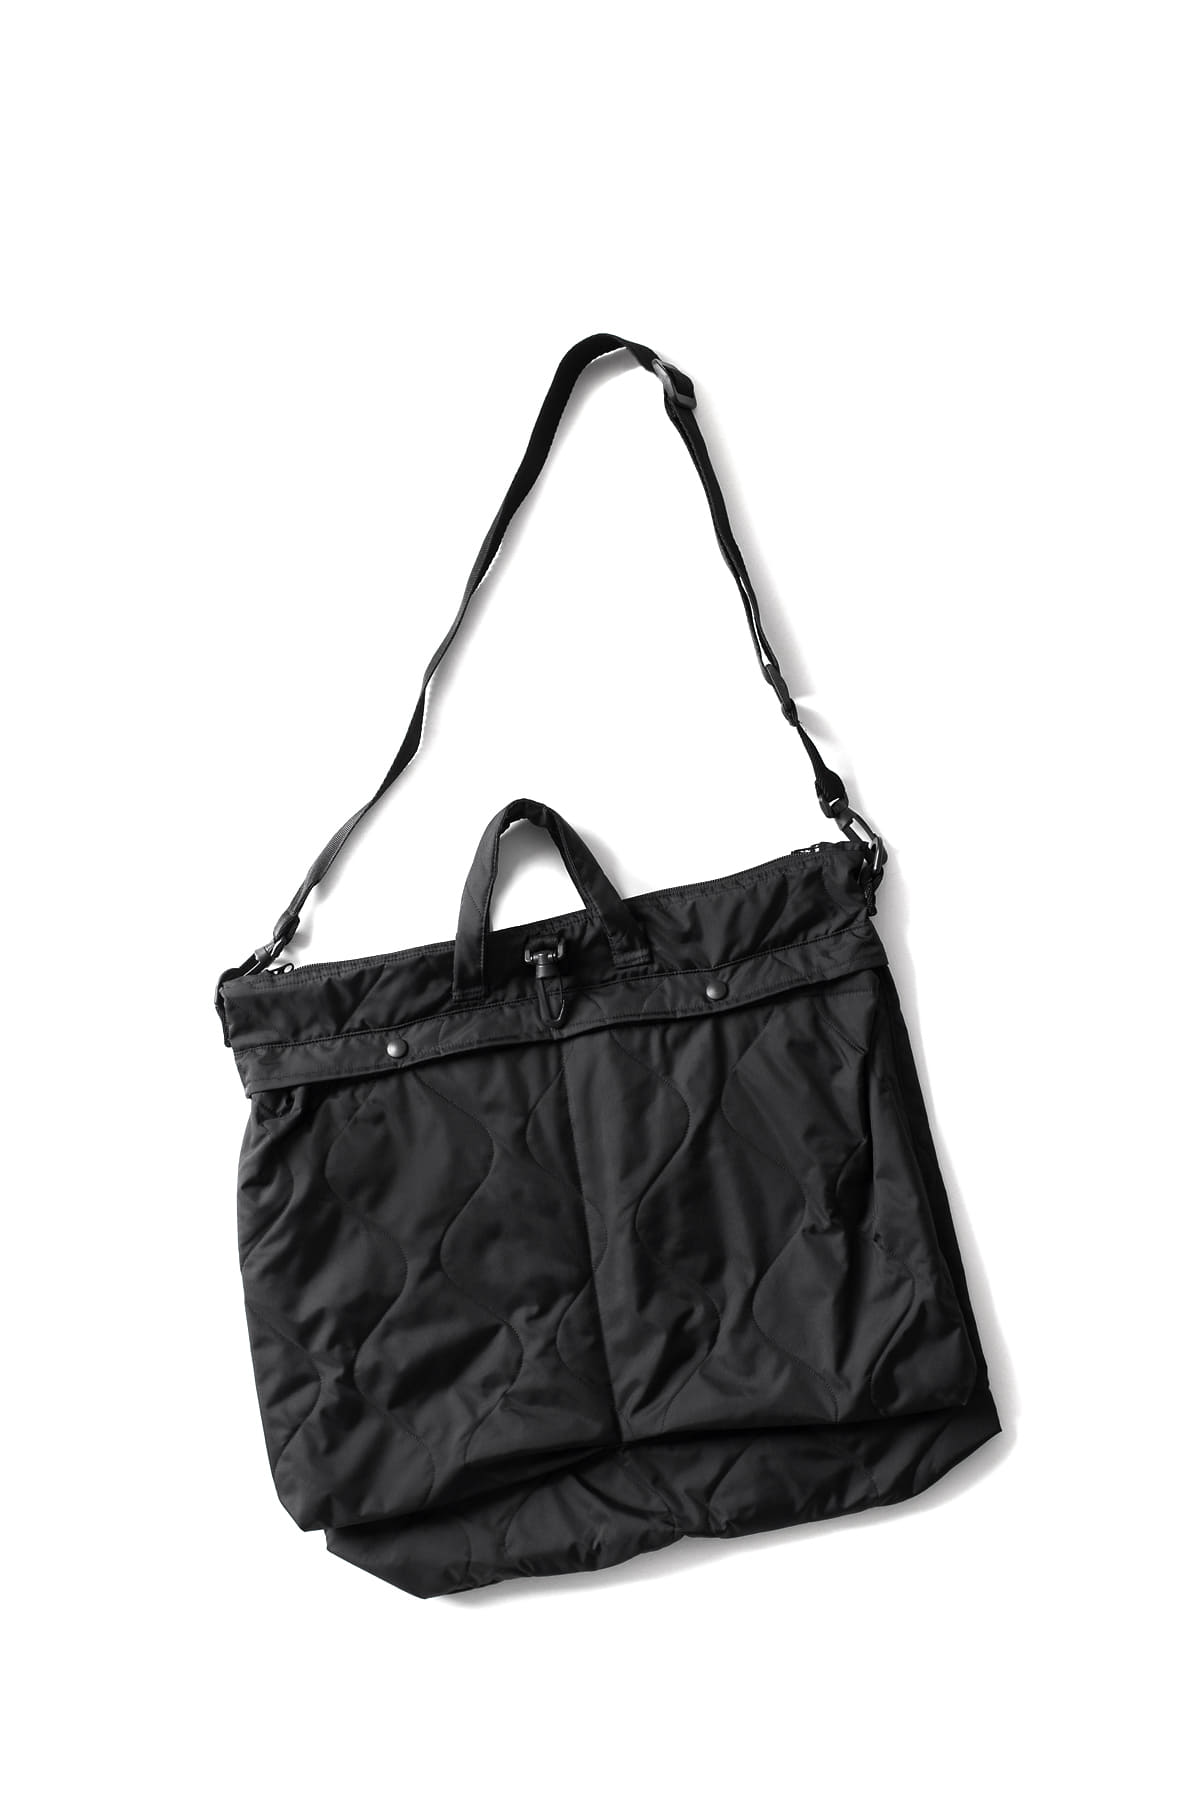 CAMO : HOLLYWOOD DUN Bag (Black)